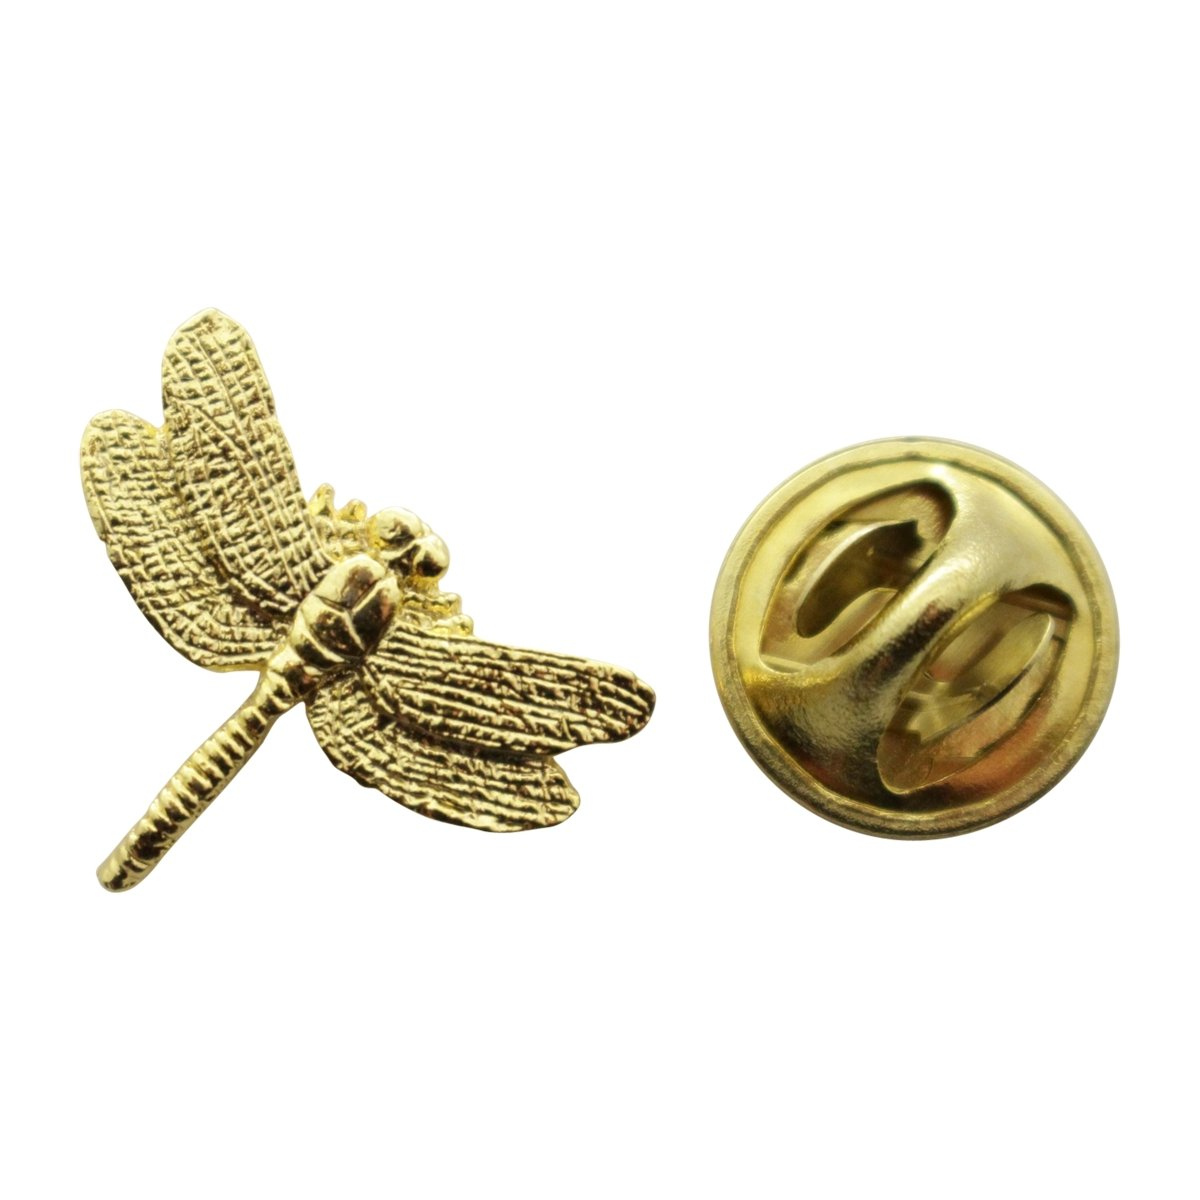 Dragonfly Mini Pin ~ 24K Gold ~ Miniature Lapel Pin ~ Sarah's Treats & Treasures